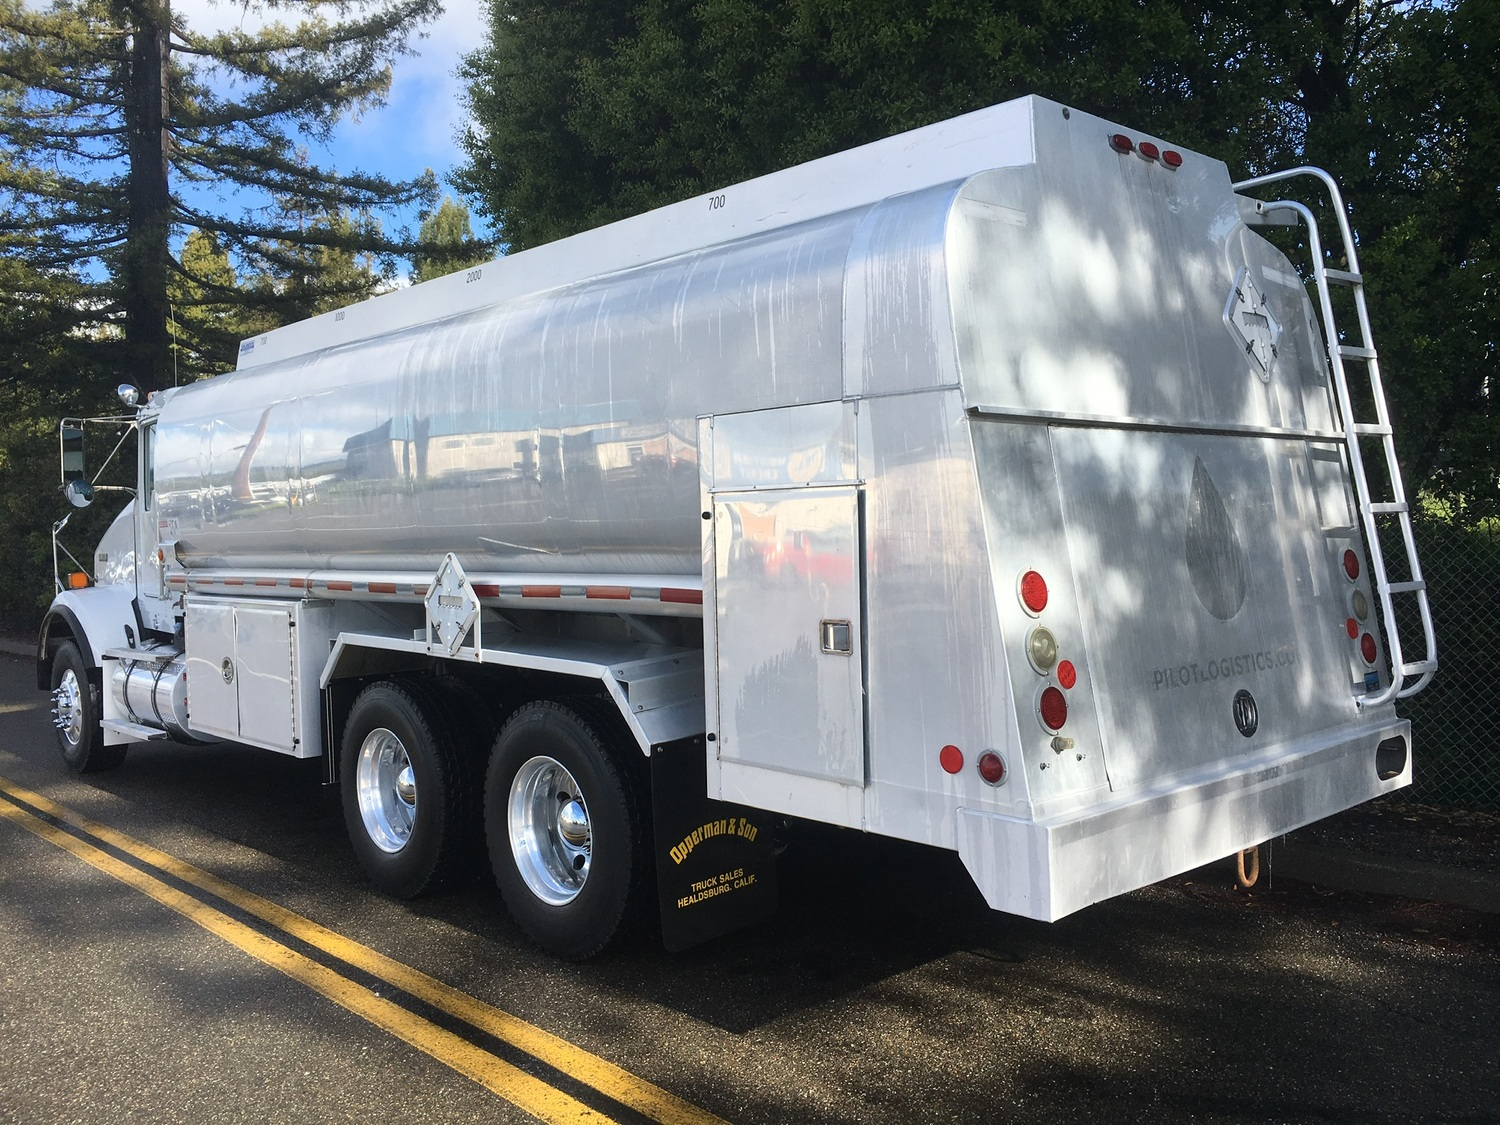 2014 KENWORTH T800 4400 GALLON 3-AXLE FUEL DELIVERY TRUCK